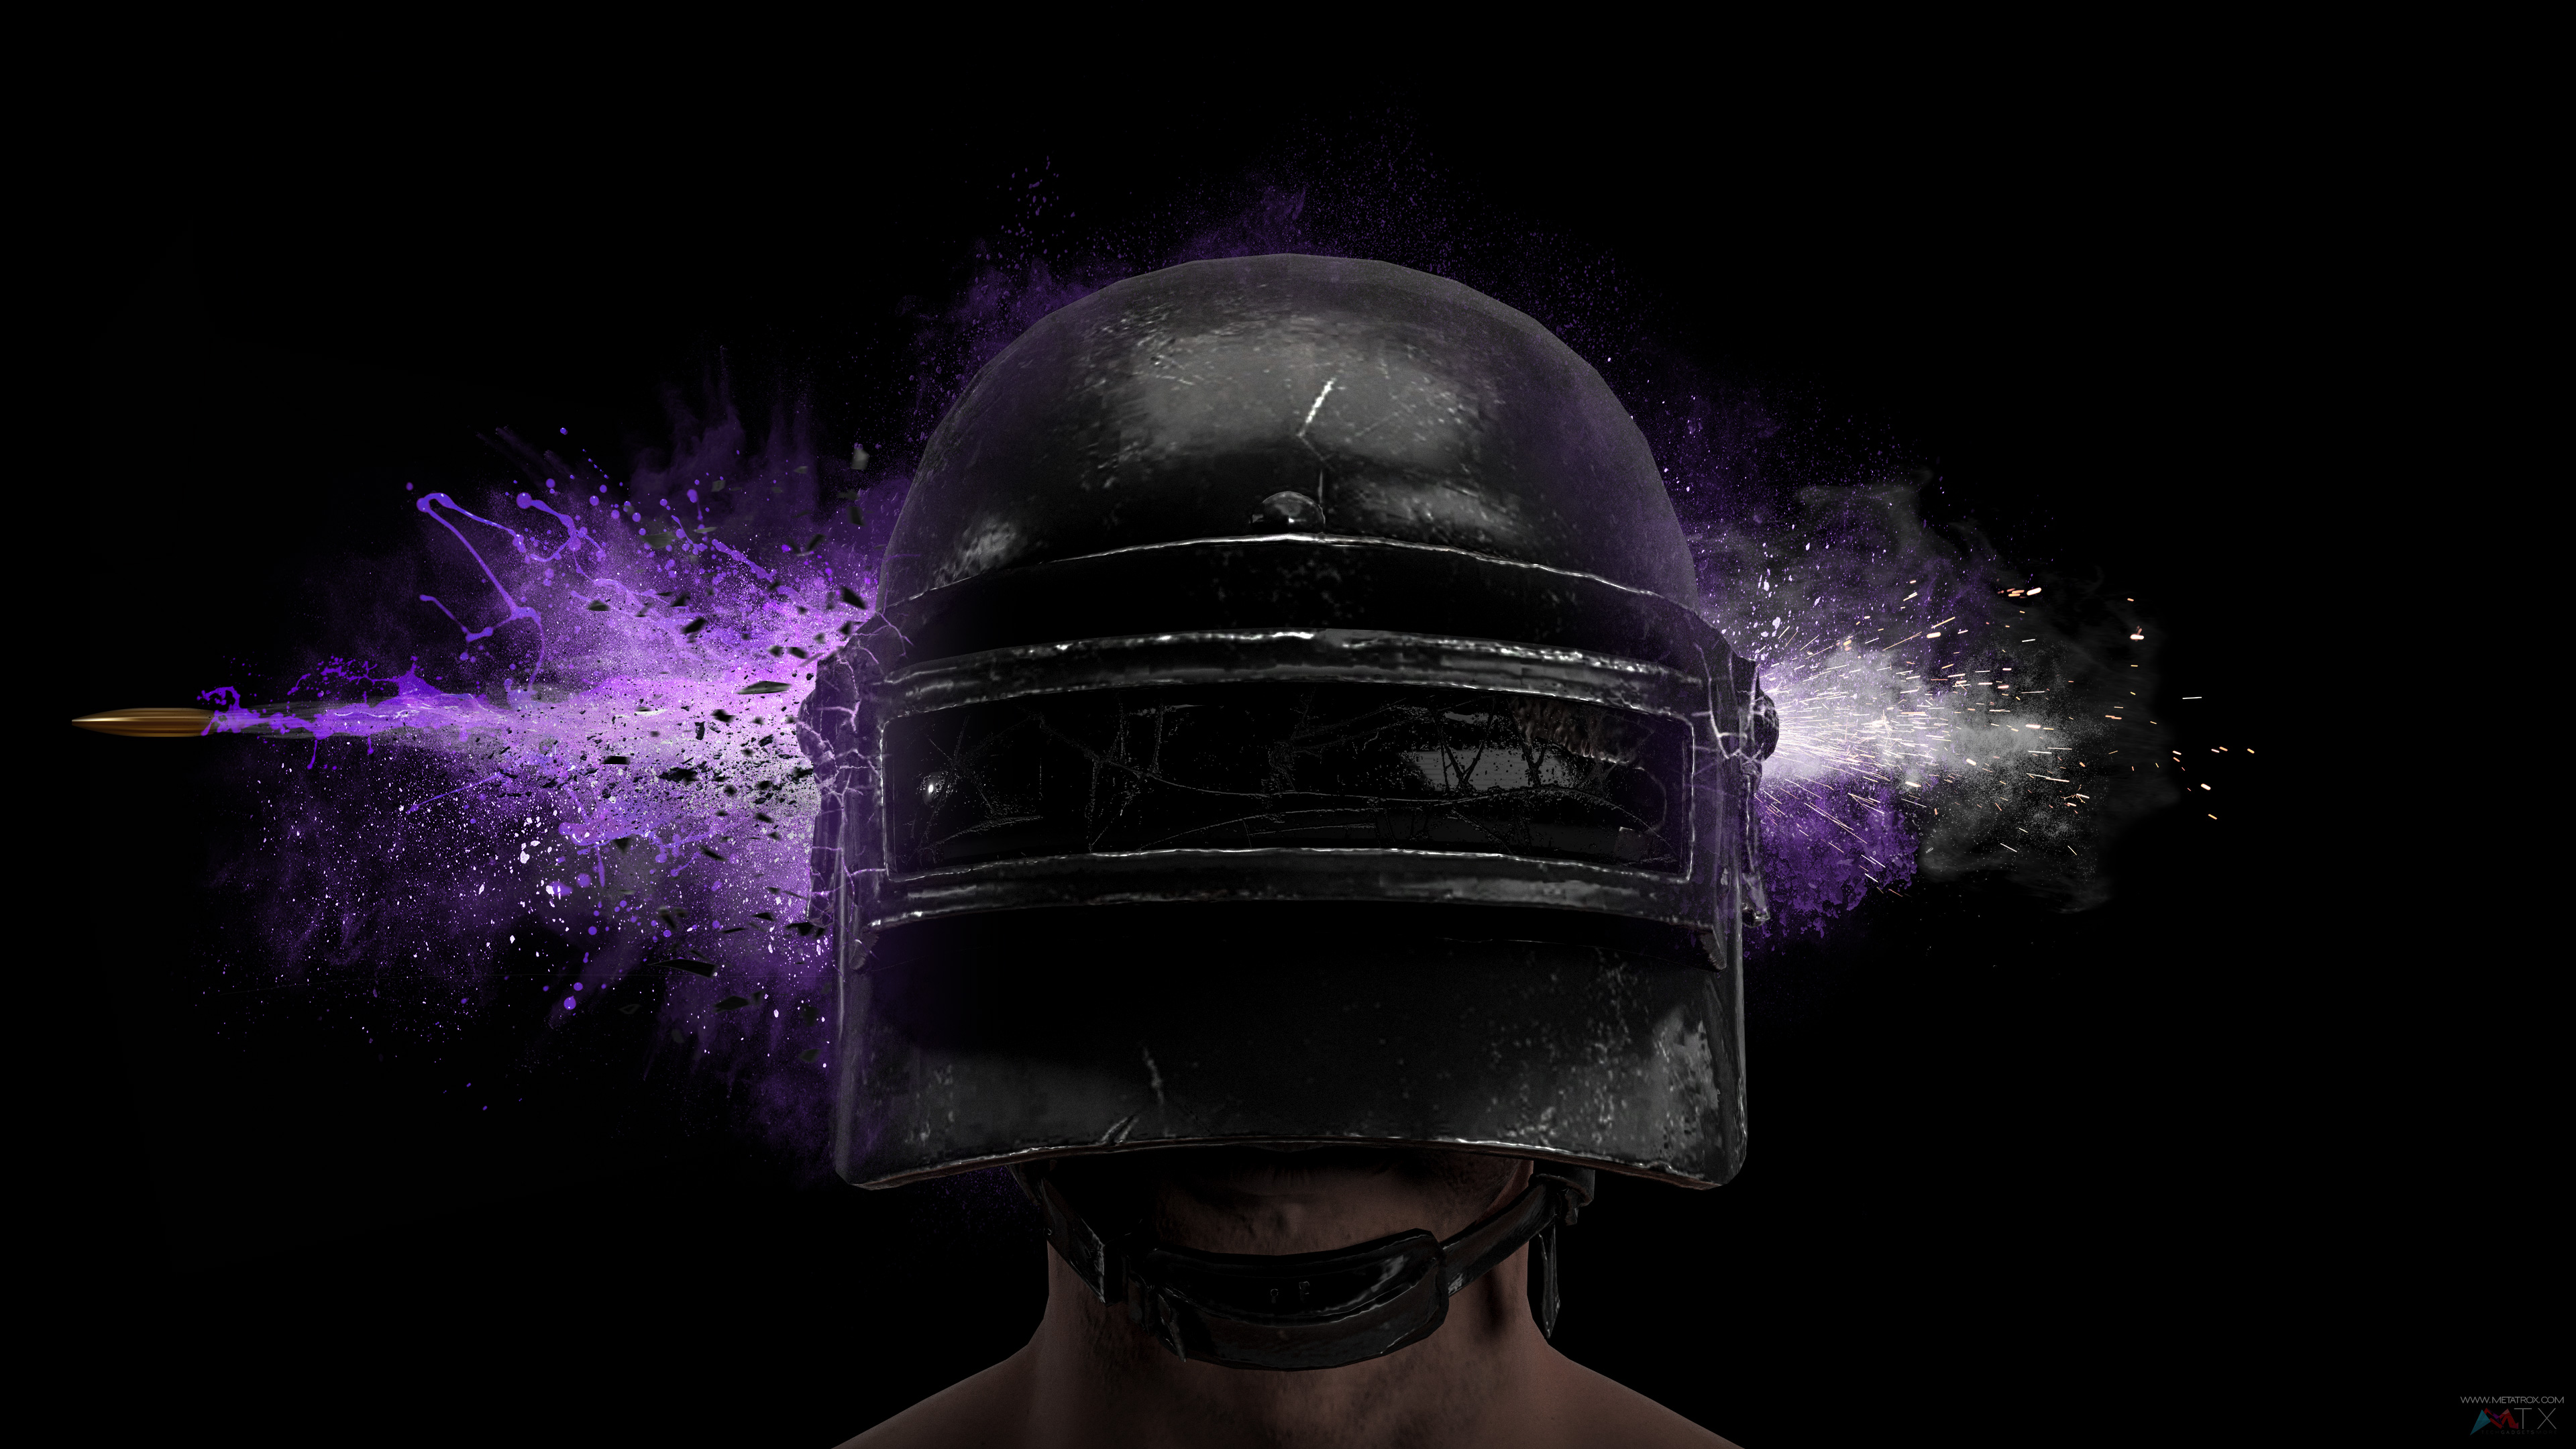 Pubg Wallpaper 4k: 3840x2160 PUBG Game Helmet Guy 4k 4k HD 4k Wallpapers